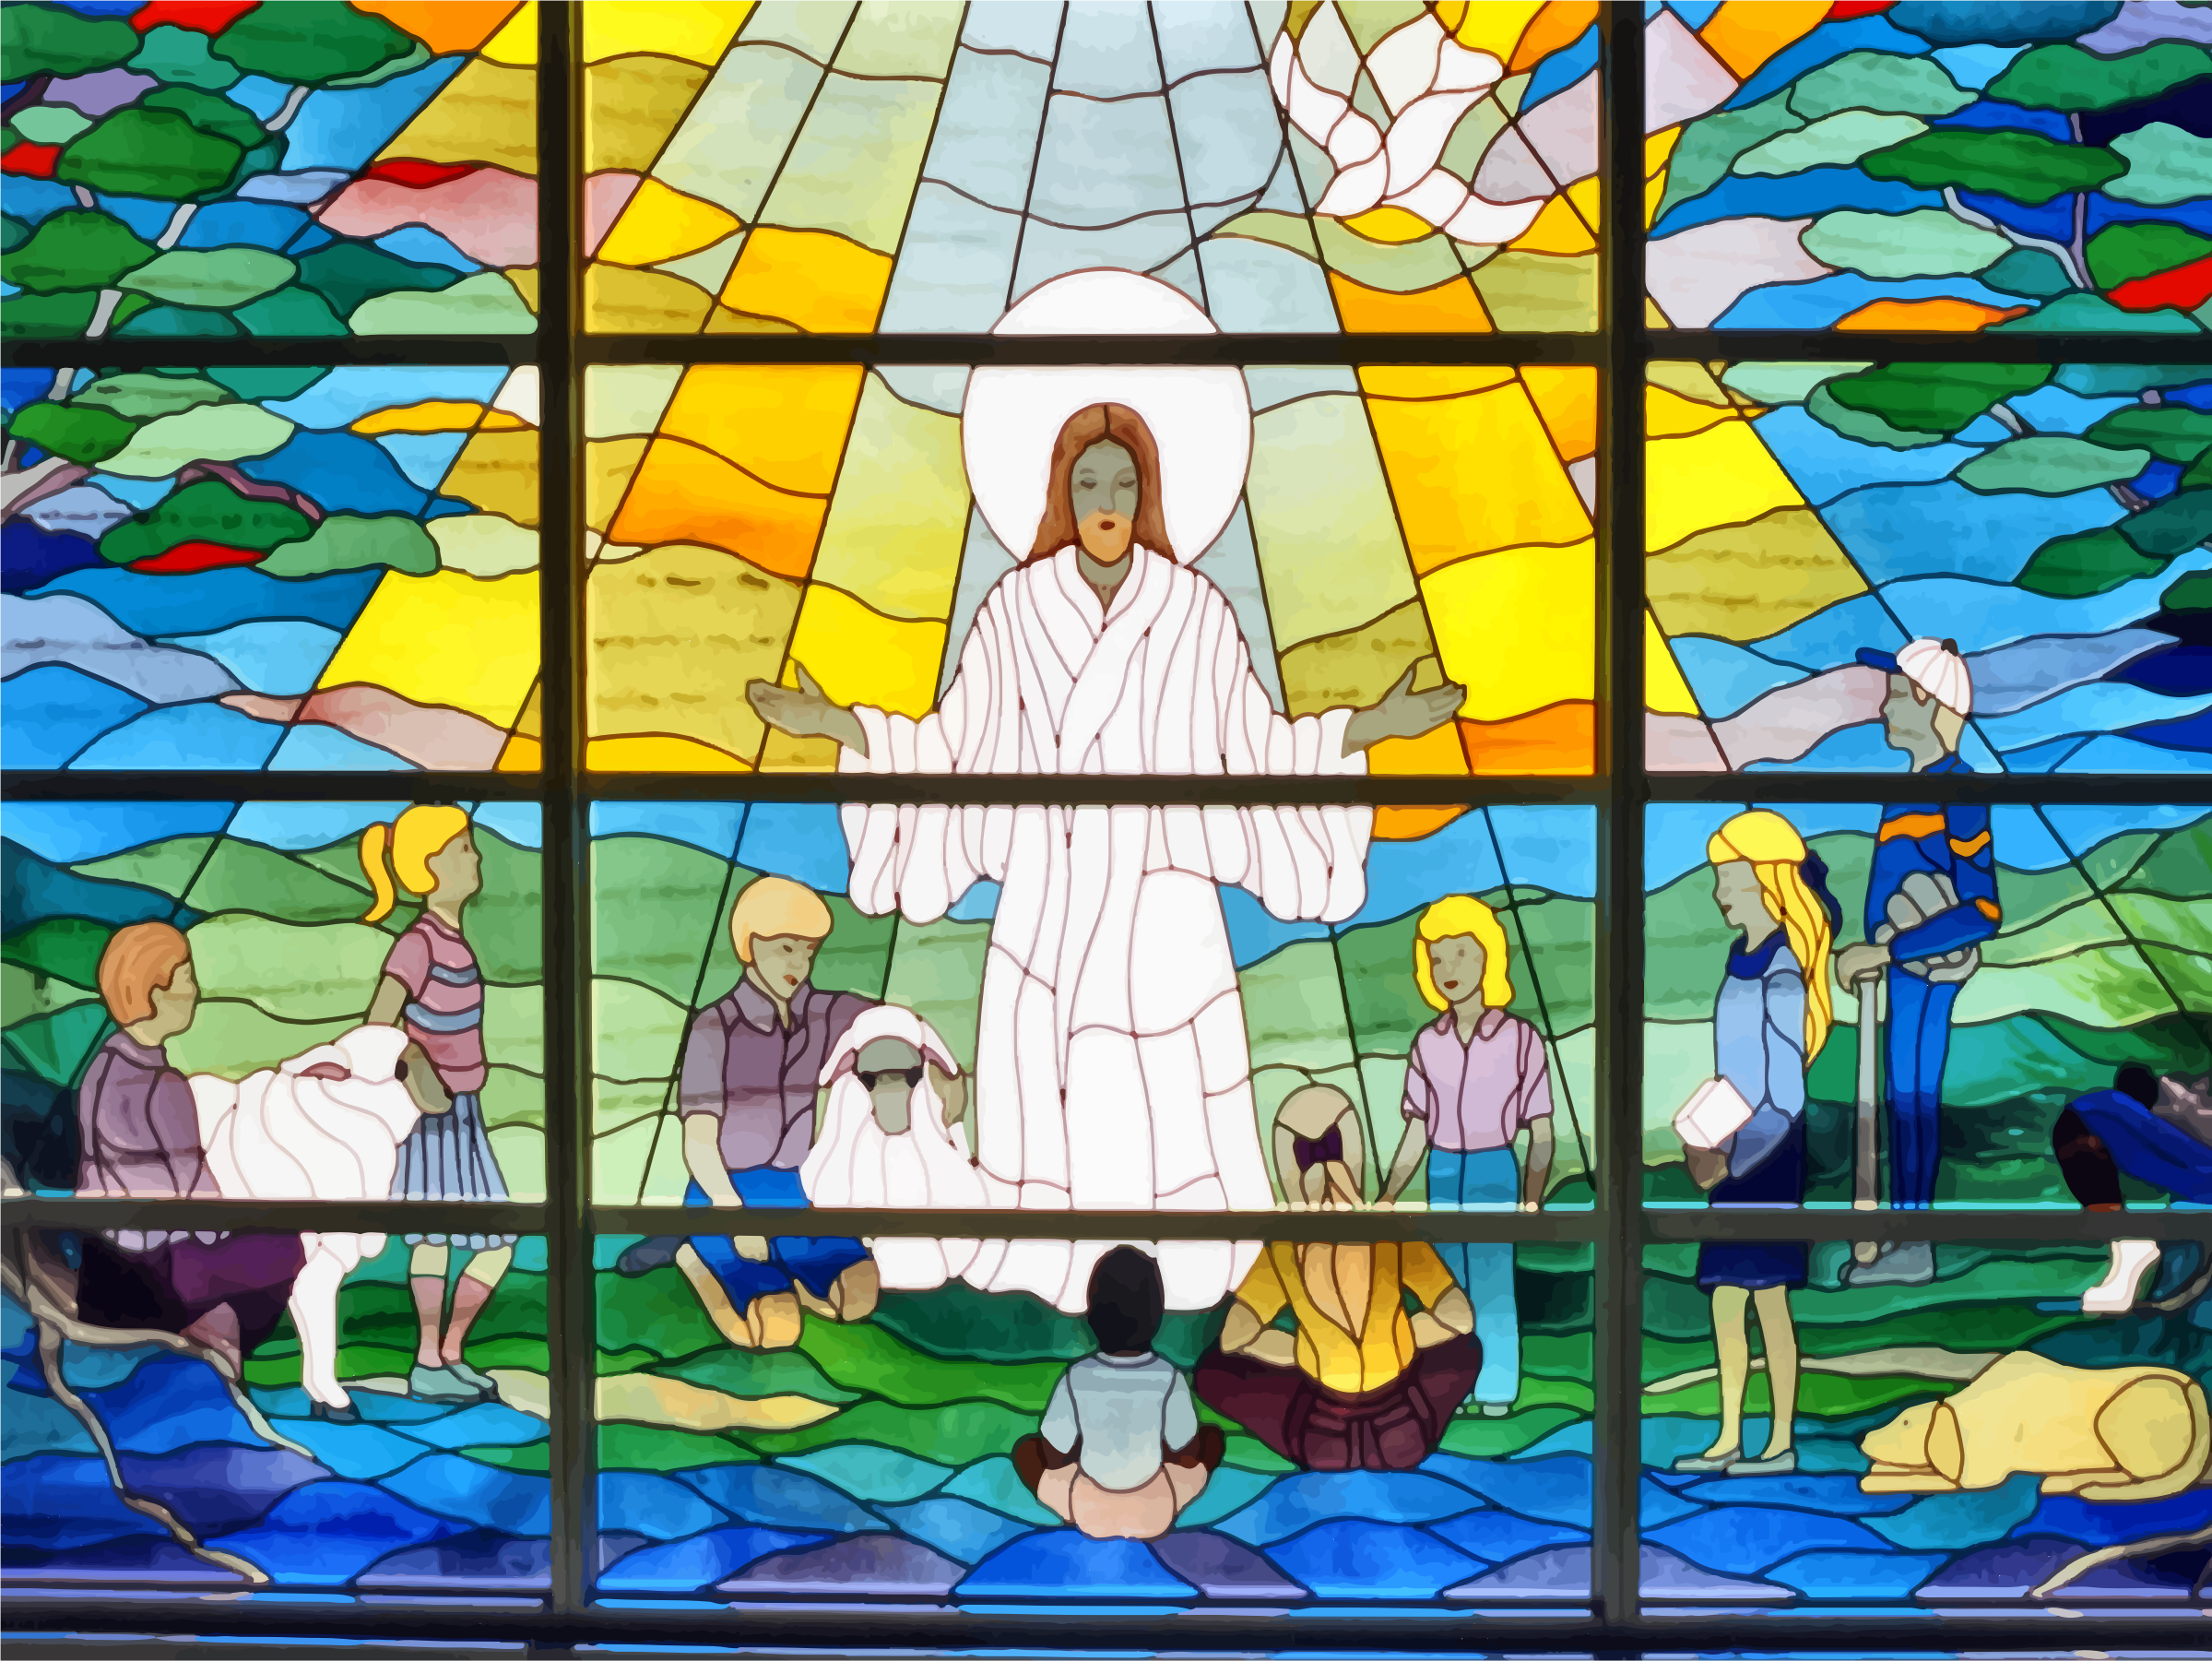 Jesus Prayer Stained Glass Window by GDJ